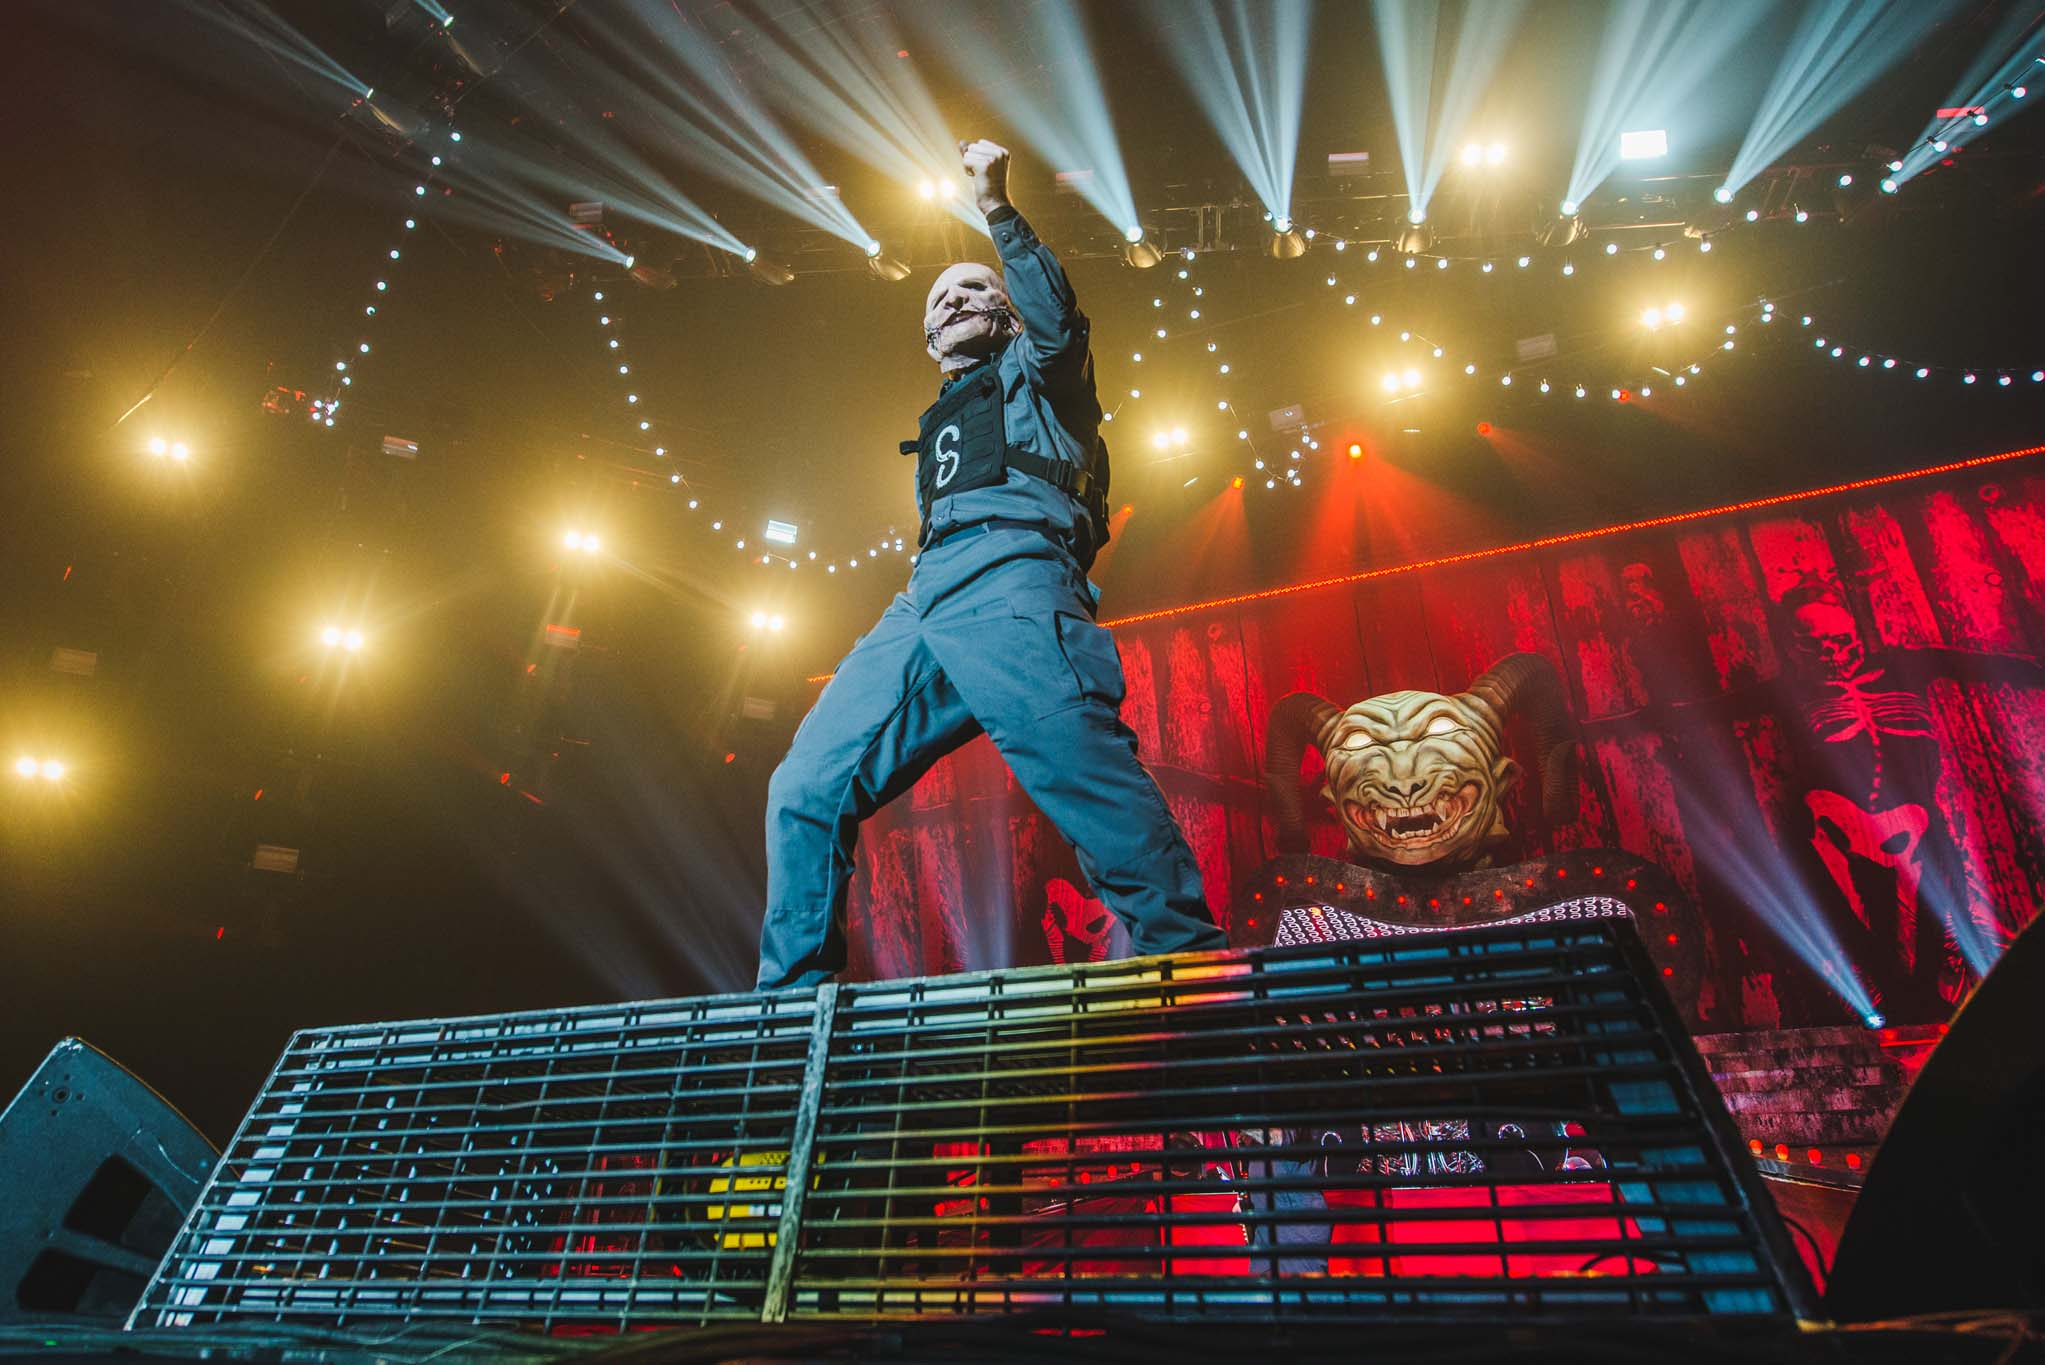 Slipknot announce Knotfest At Sea cruise